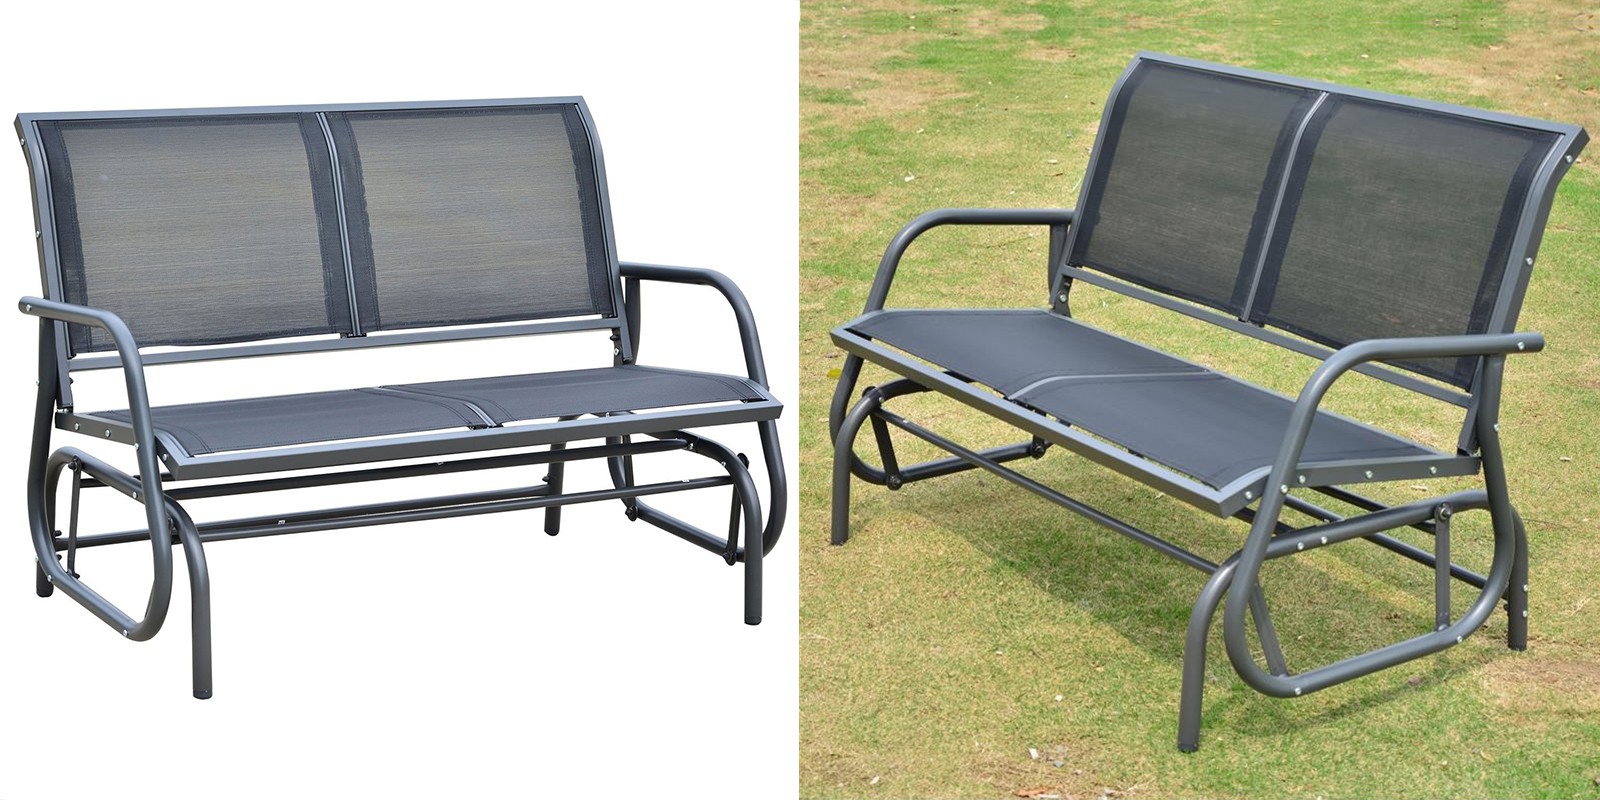 Patio Chair   Outdoor Patio Glider Bench Swing